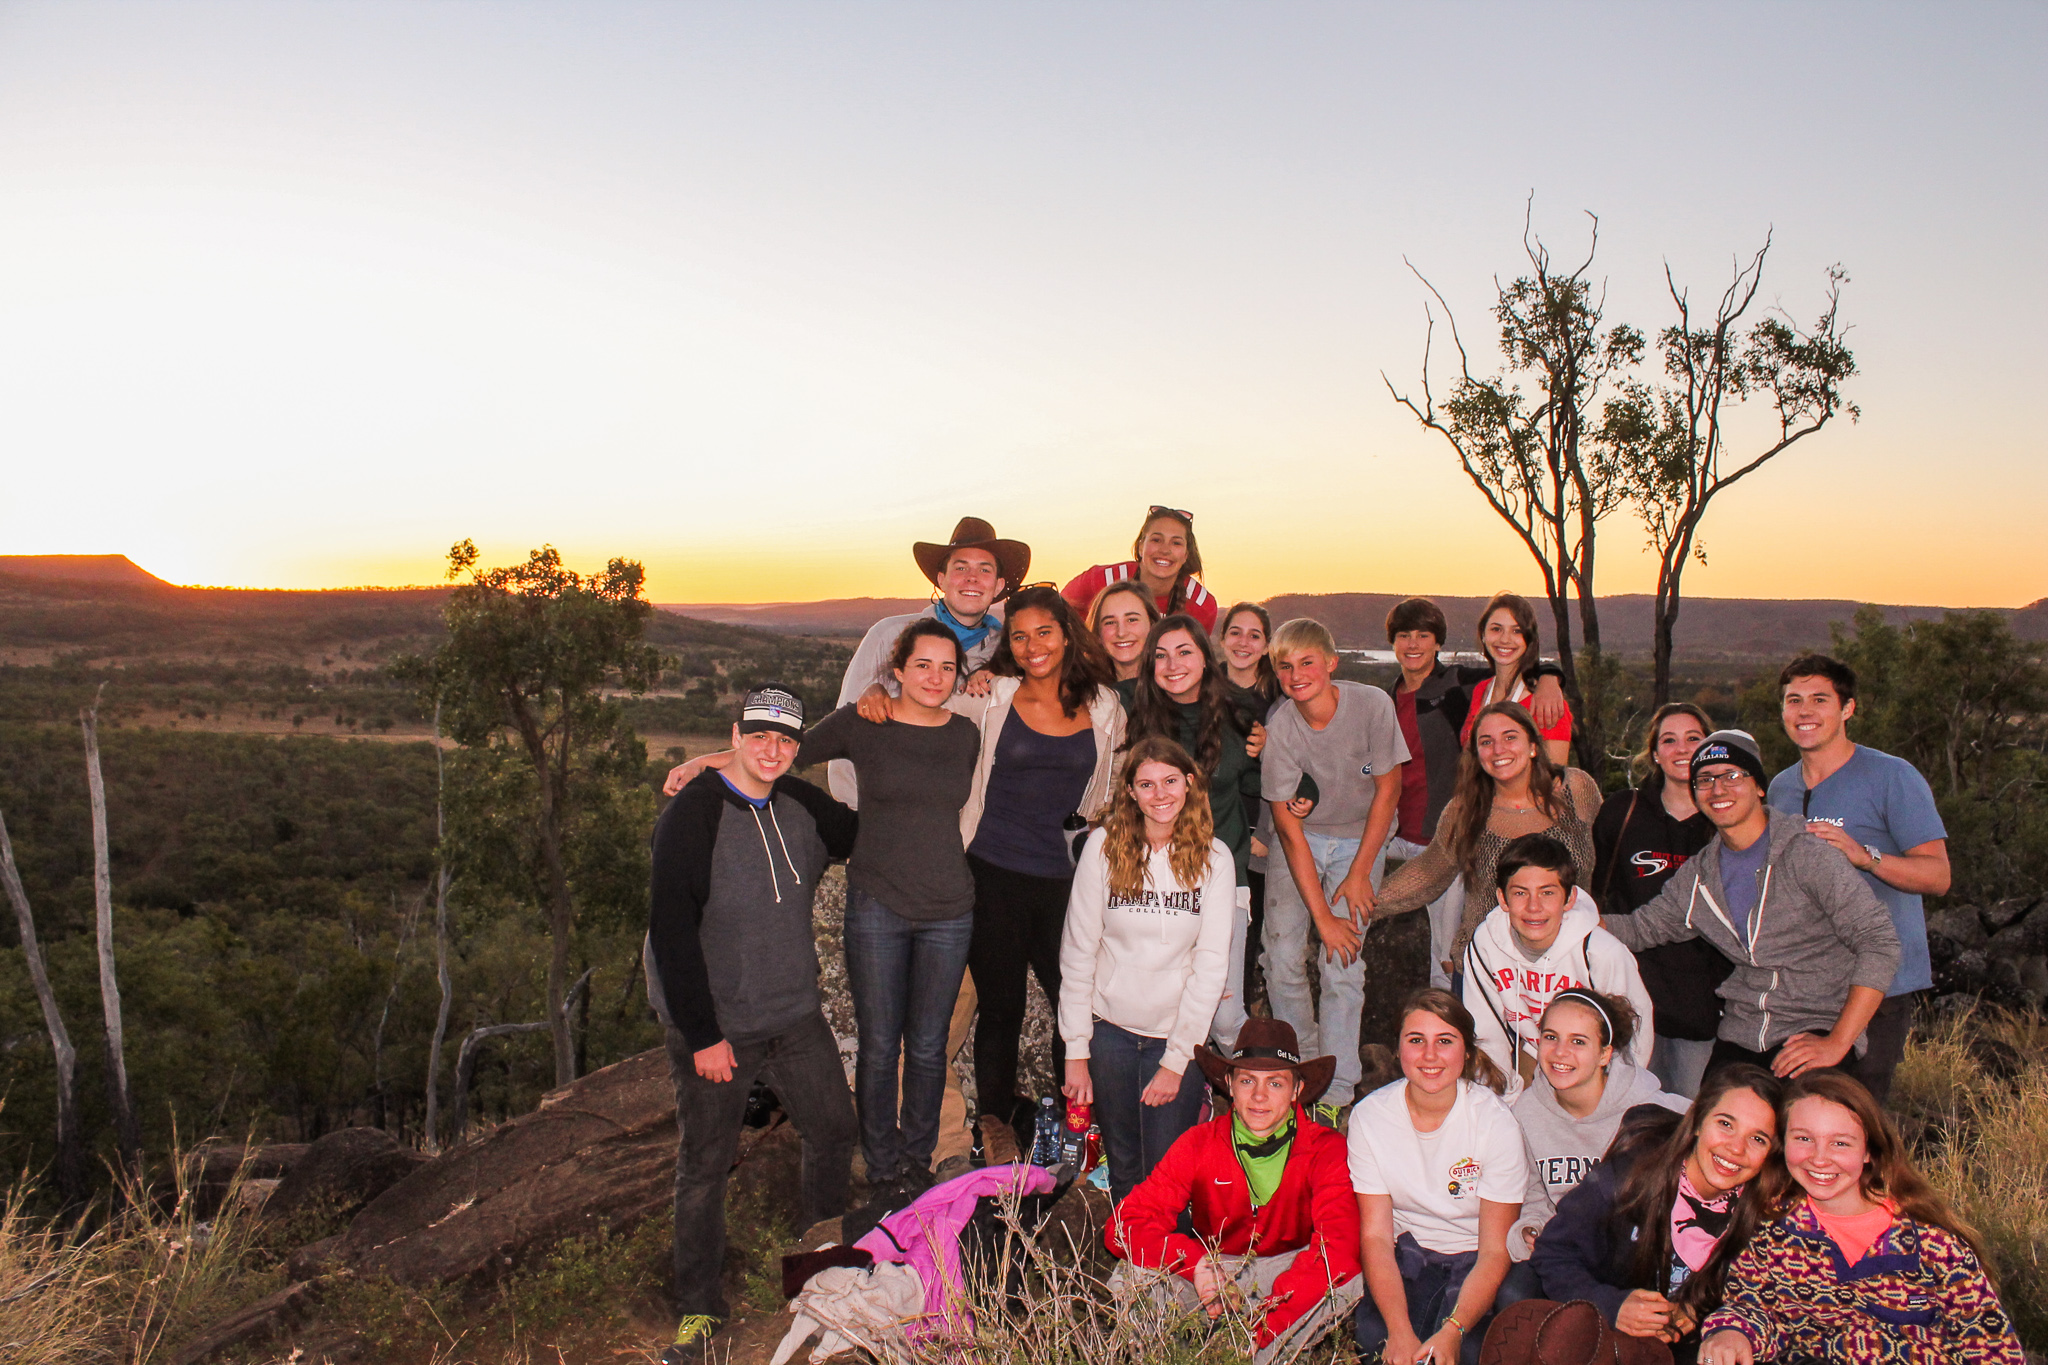 Summer Program - Promoting Volunteerism | Travel For Teens: Australia Service and Adventure